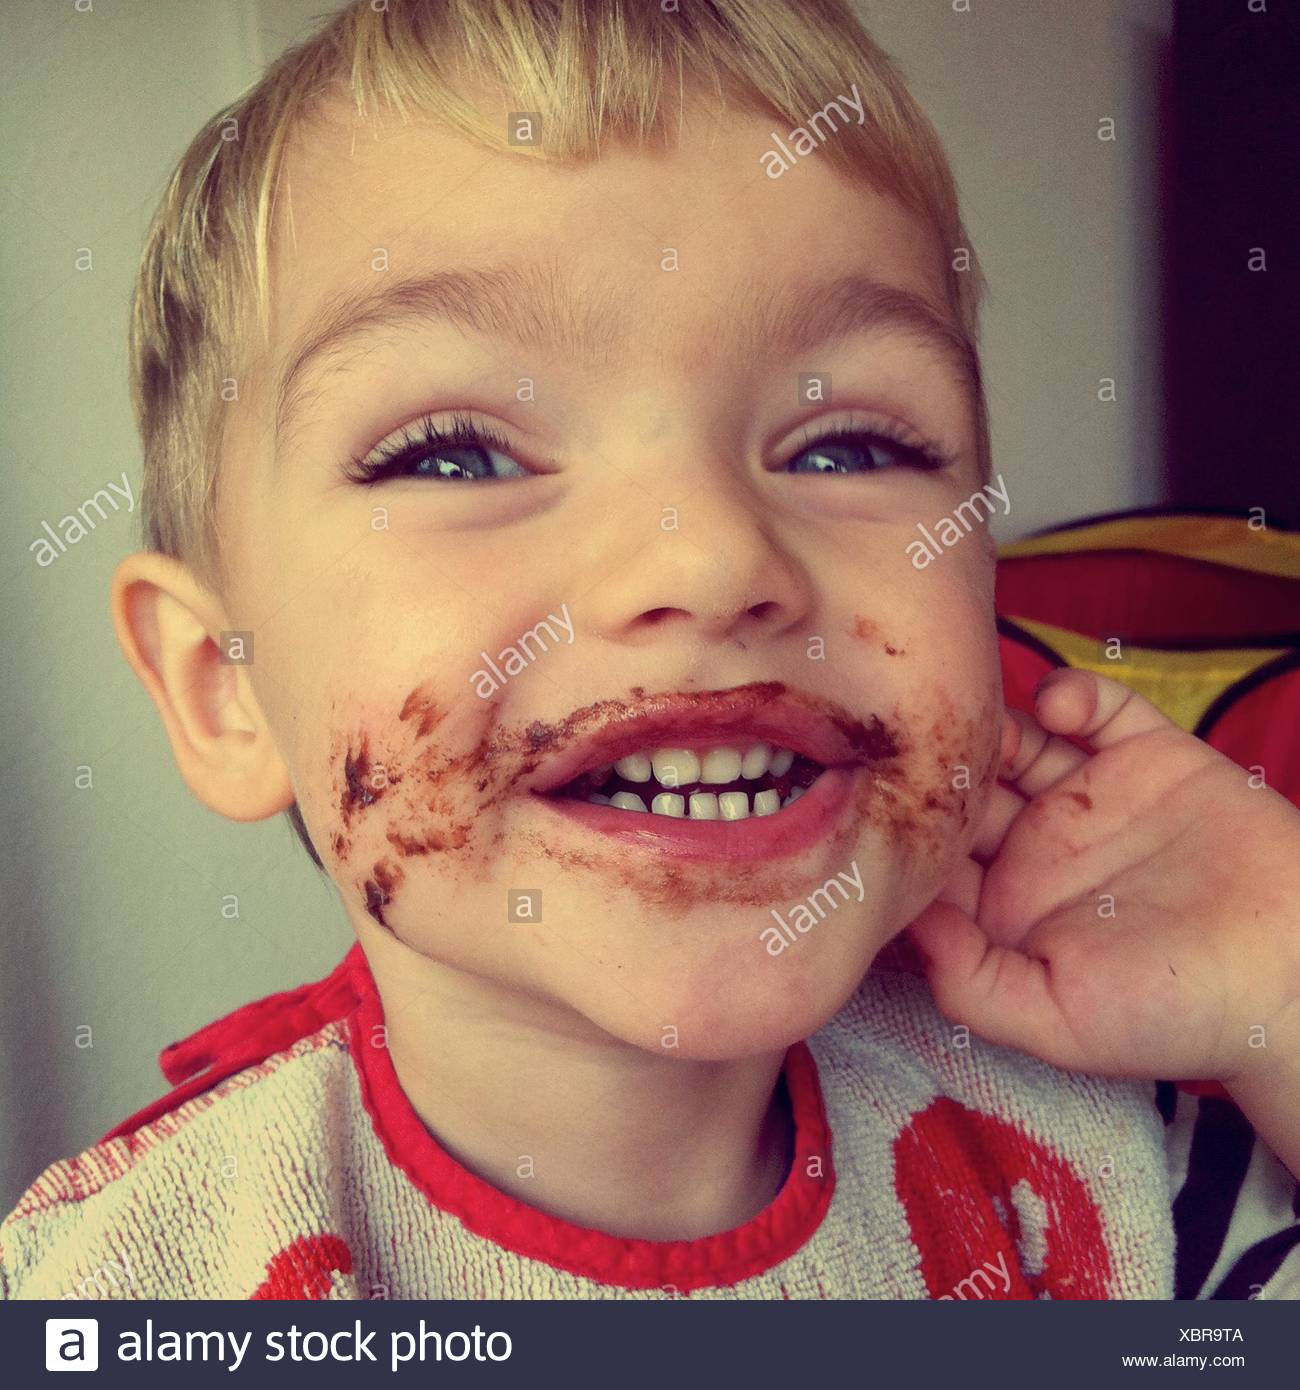 Portrait Of Cute Boy After Eating Chocolate Cake At Home - Stock Image